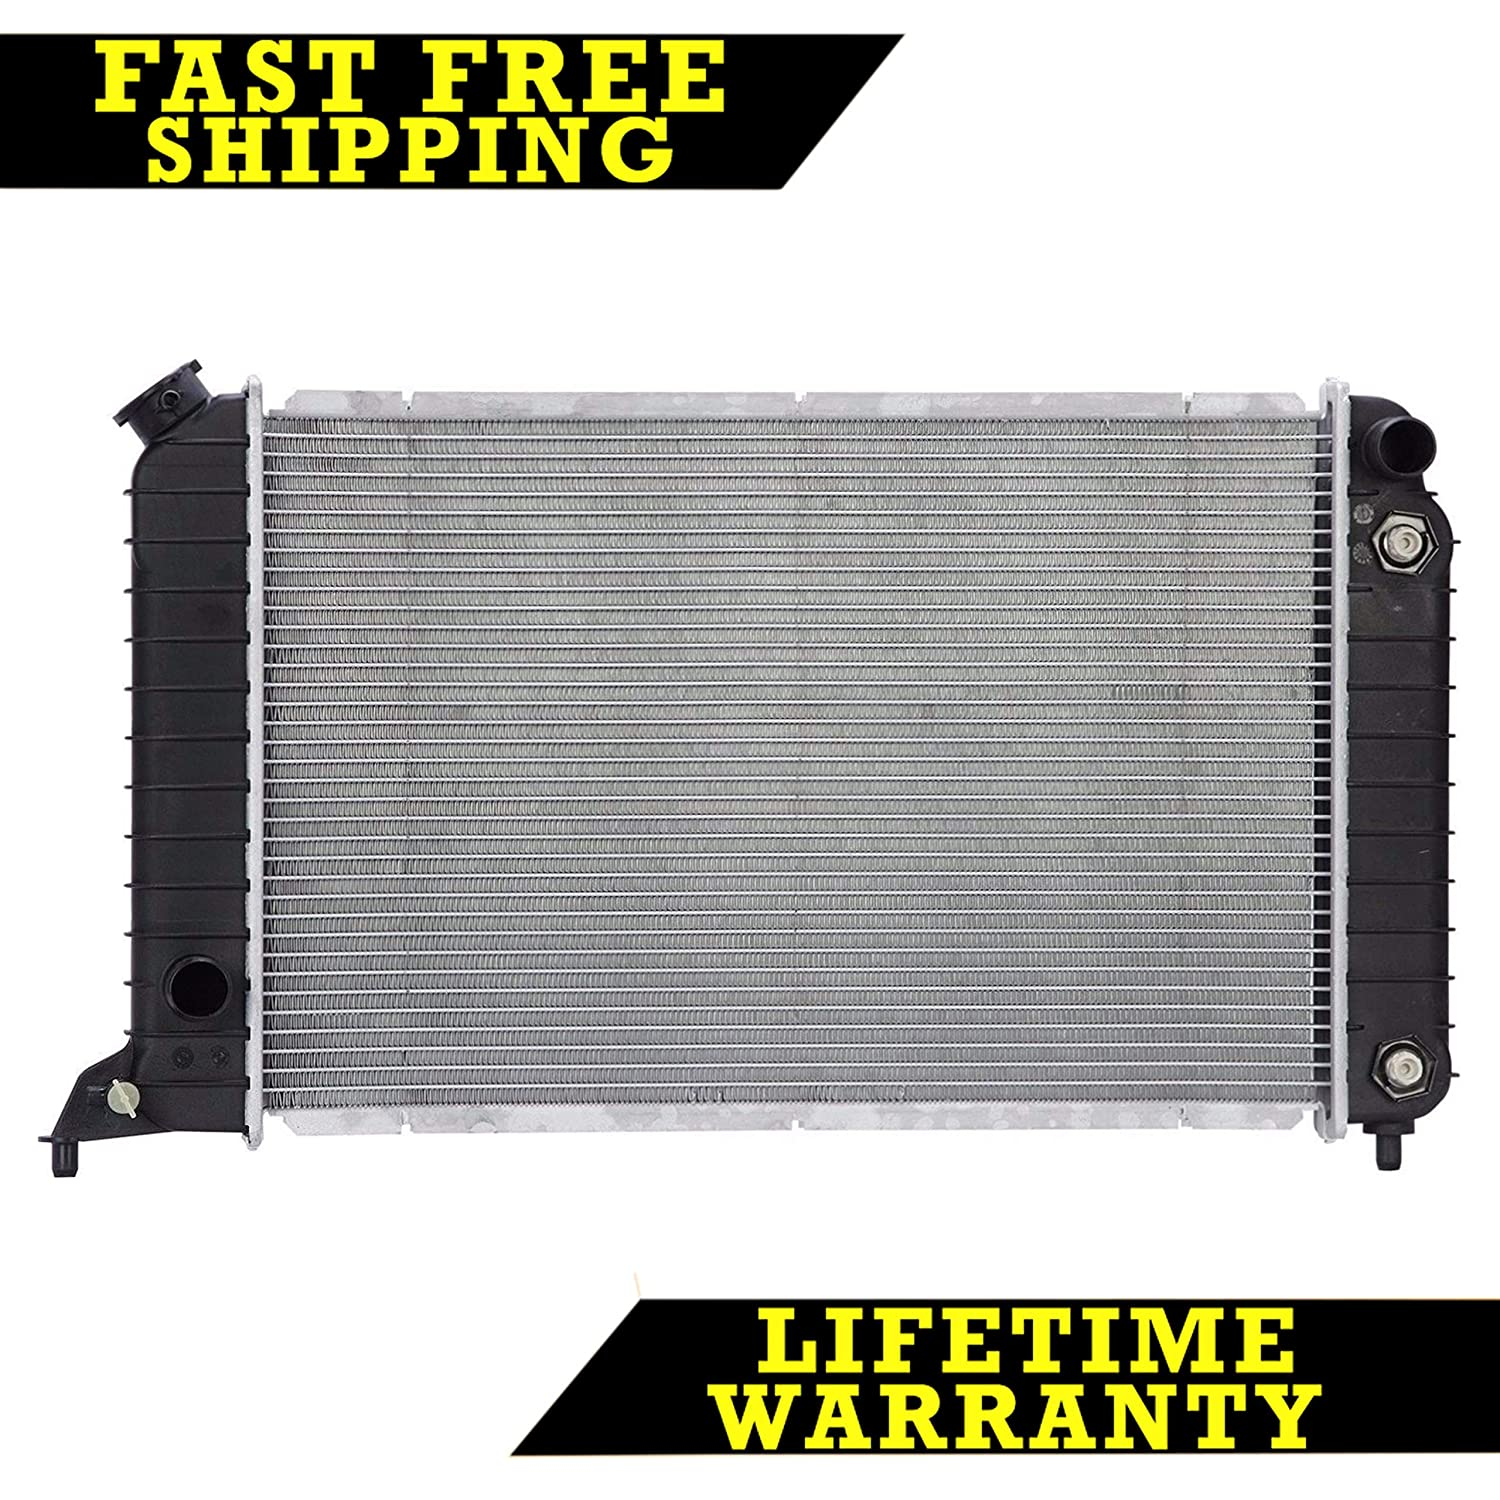 RADIATOR FOR CHEVY GMC ISUZU FITS S10 SONOMA HOMBRE 2.2 L4 4CYL 1531 Sunbelt Radiators